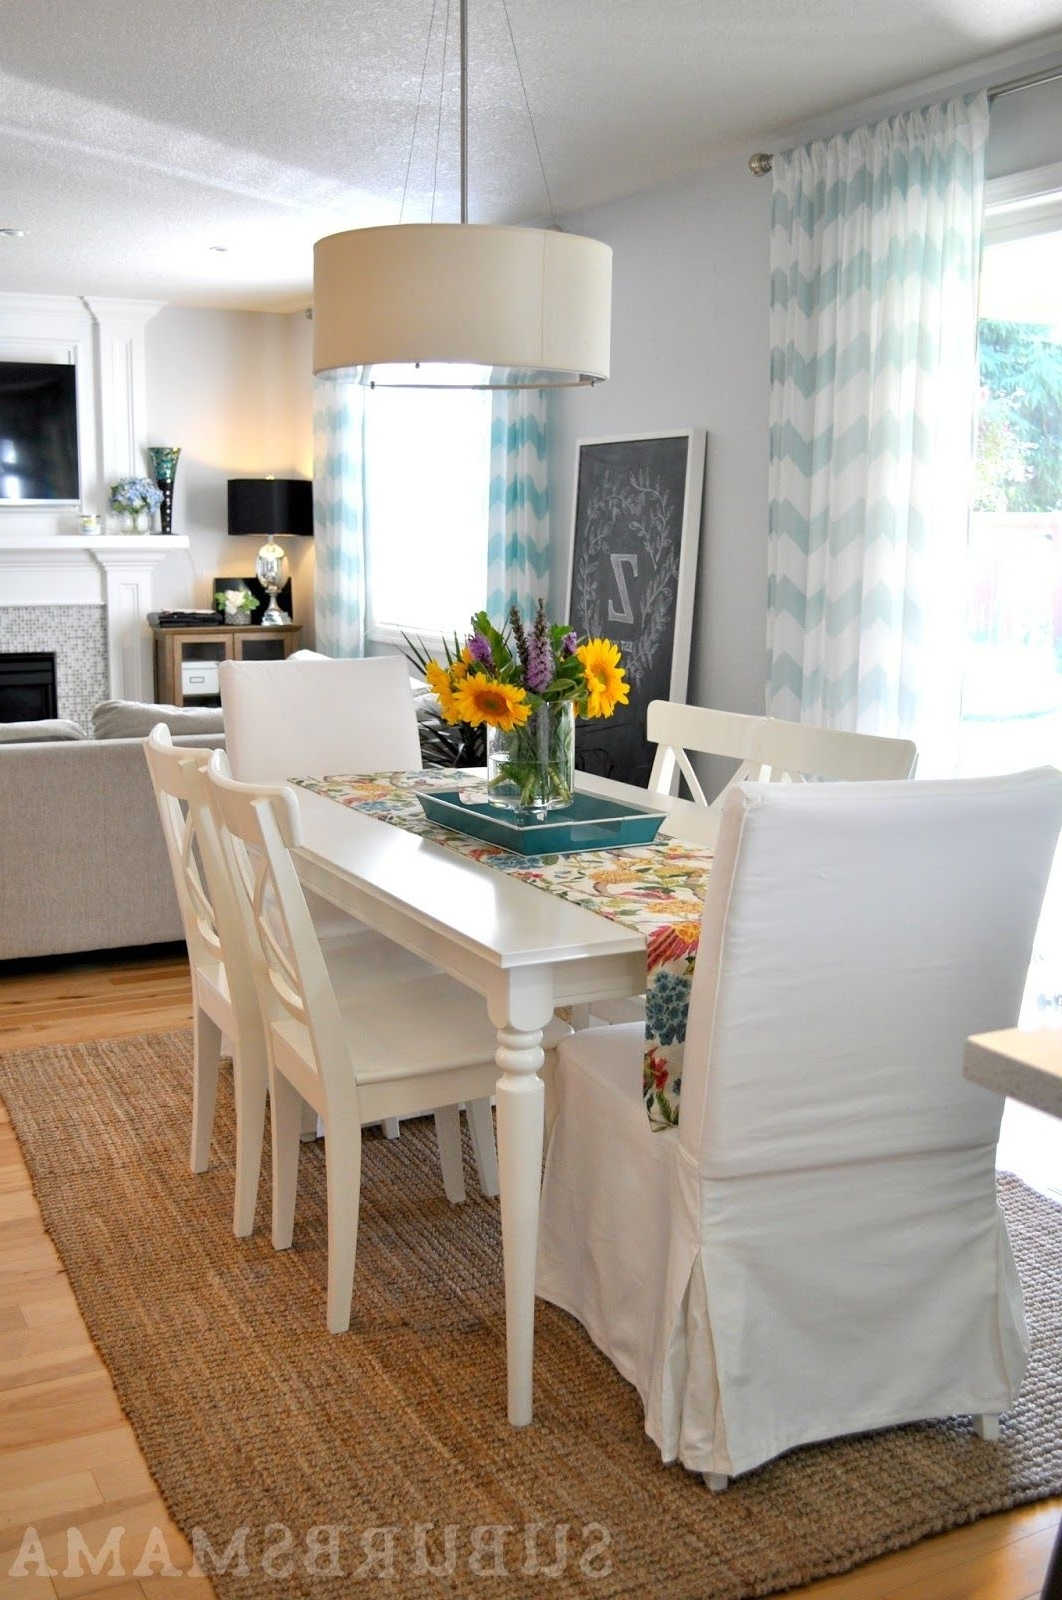 Dining Room With Kirsten 6 Piece Dining Sets (View 10 of 25)